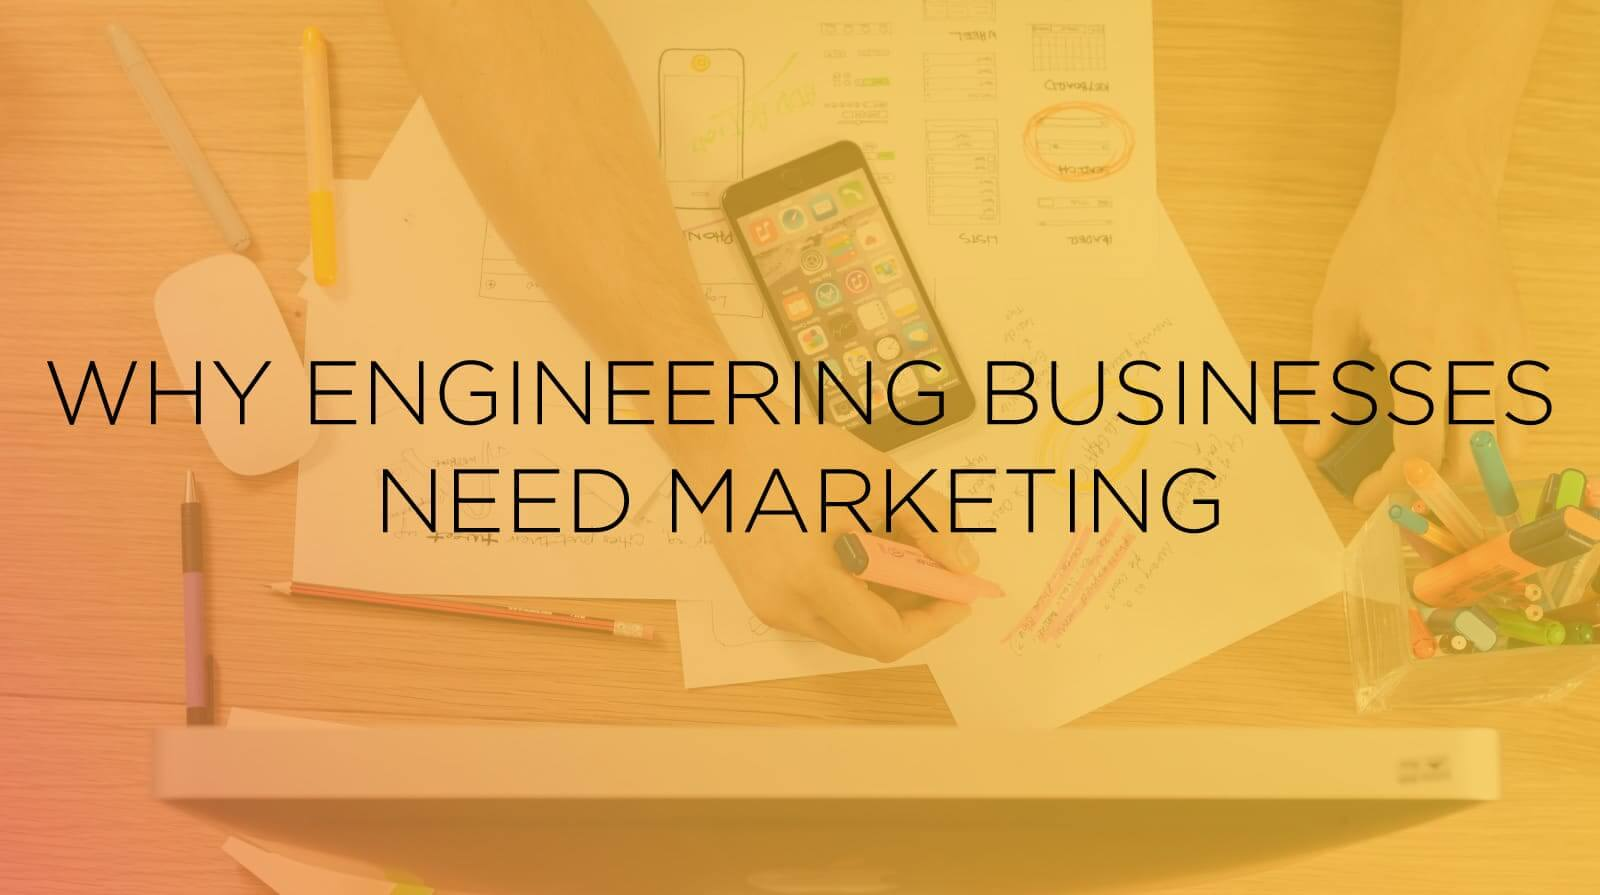 Why Engineering Businesses Need Marketing